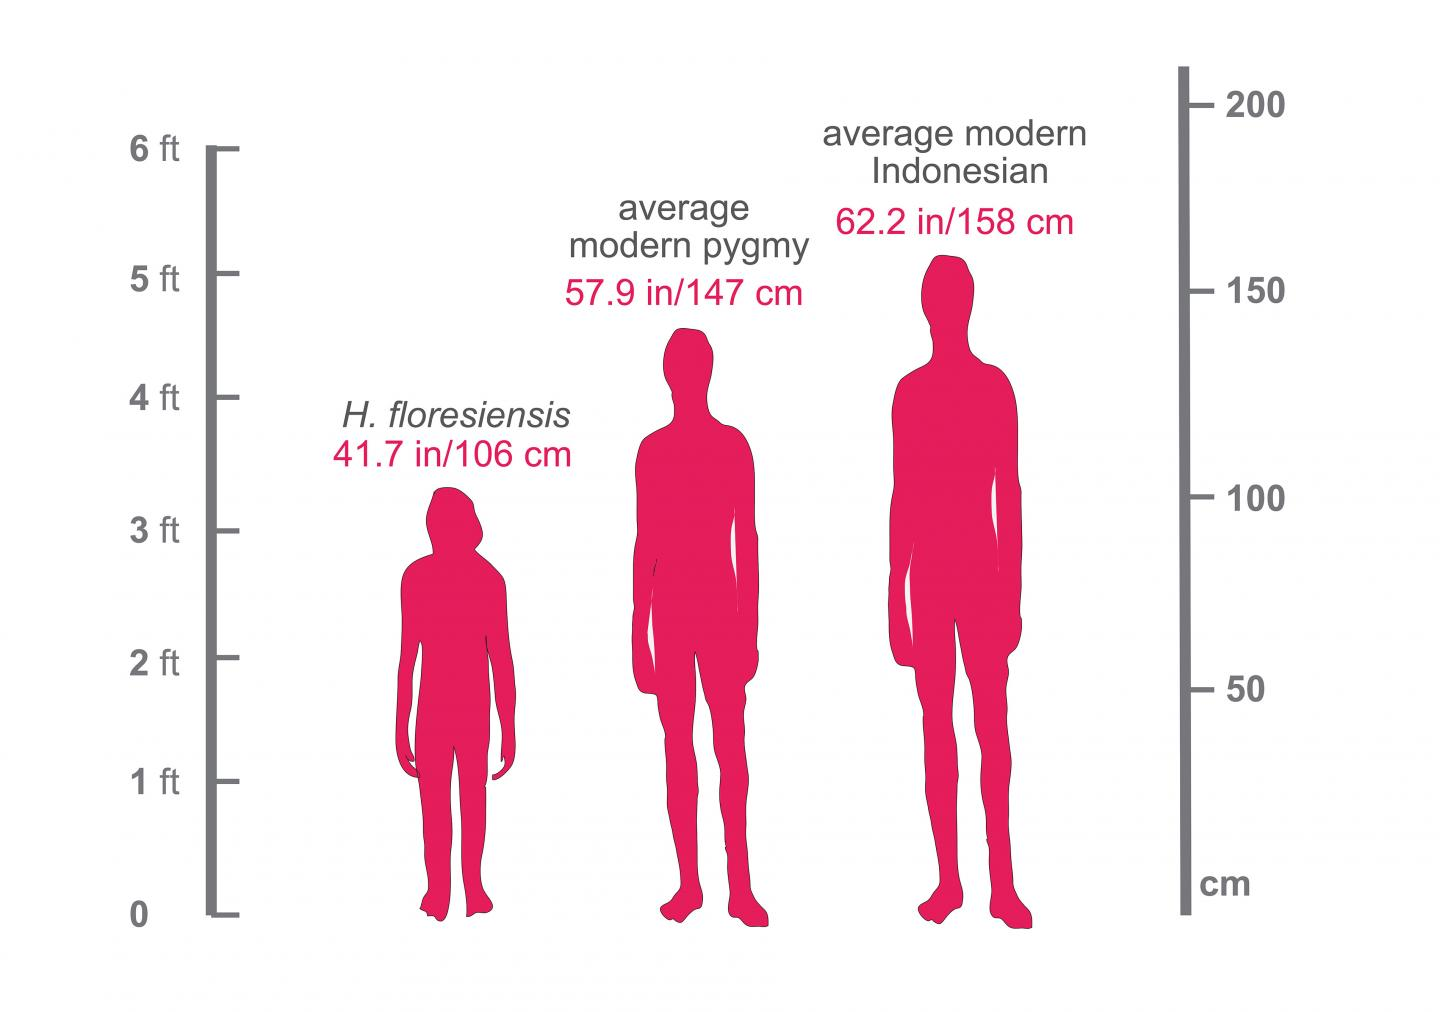 This figure shows the relative heights of a modern Indonesian (5' 2), a modern pygmy living on the island of Flores (4' 10) and Homo floresiensis (3' 5, which is the height of an average American 4-year-old). /Credit: Courtesy of Dr. Serena Tucci, Department of Ecology and Evolutionary Biology, Princeton University